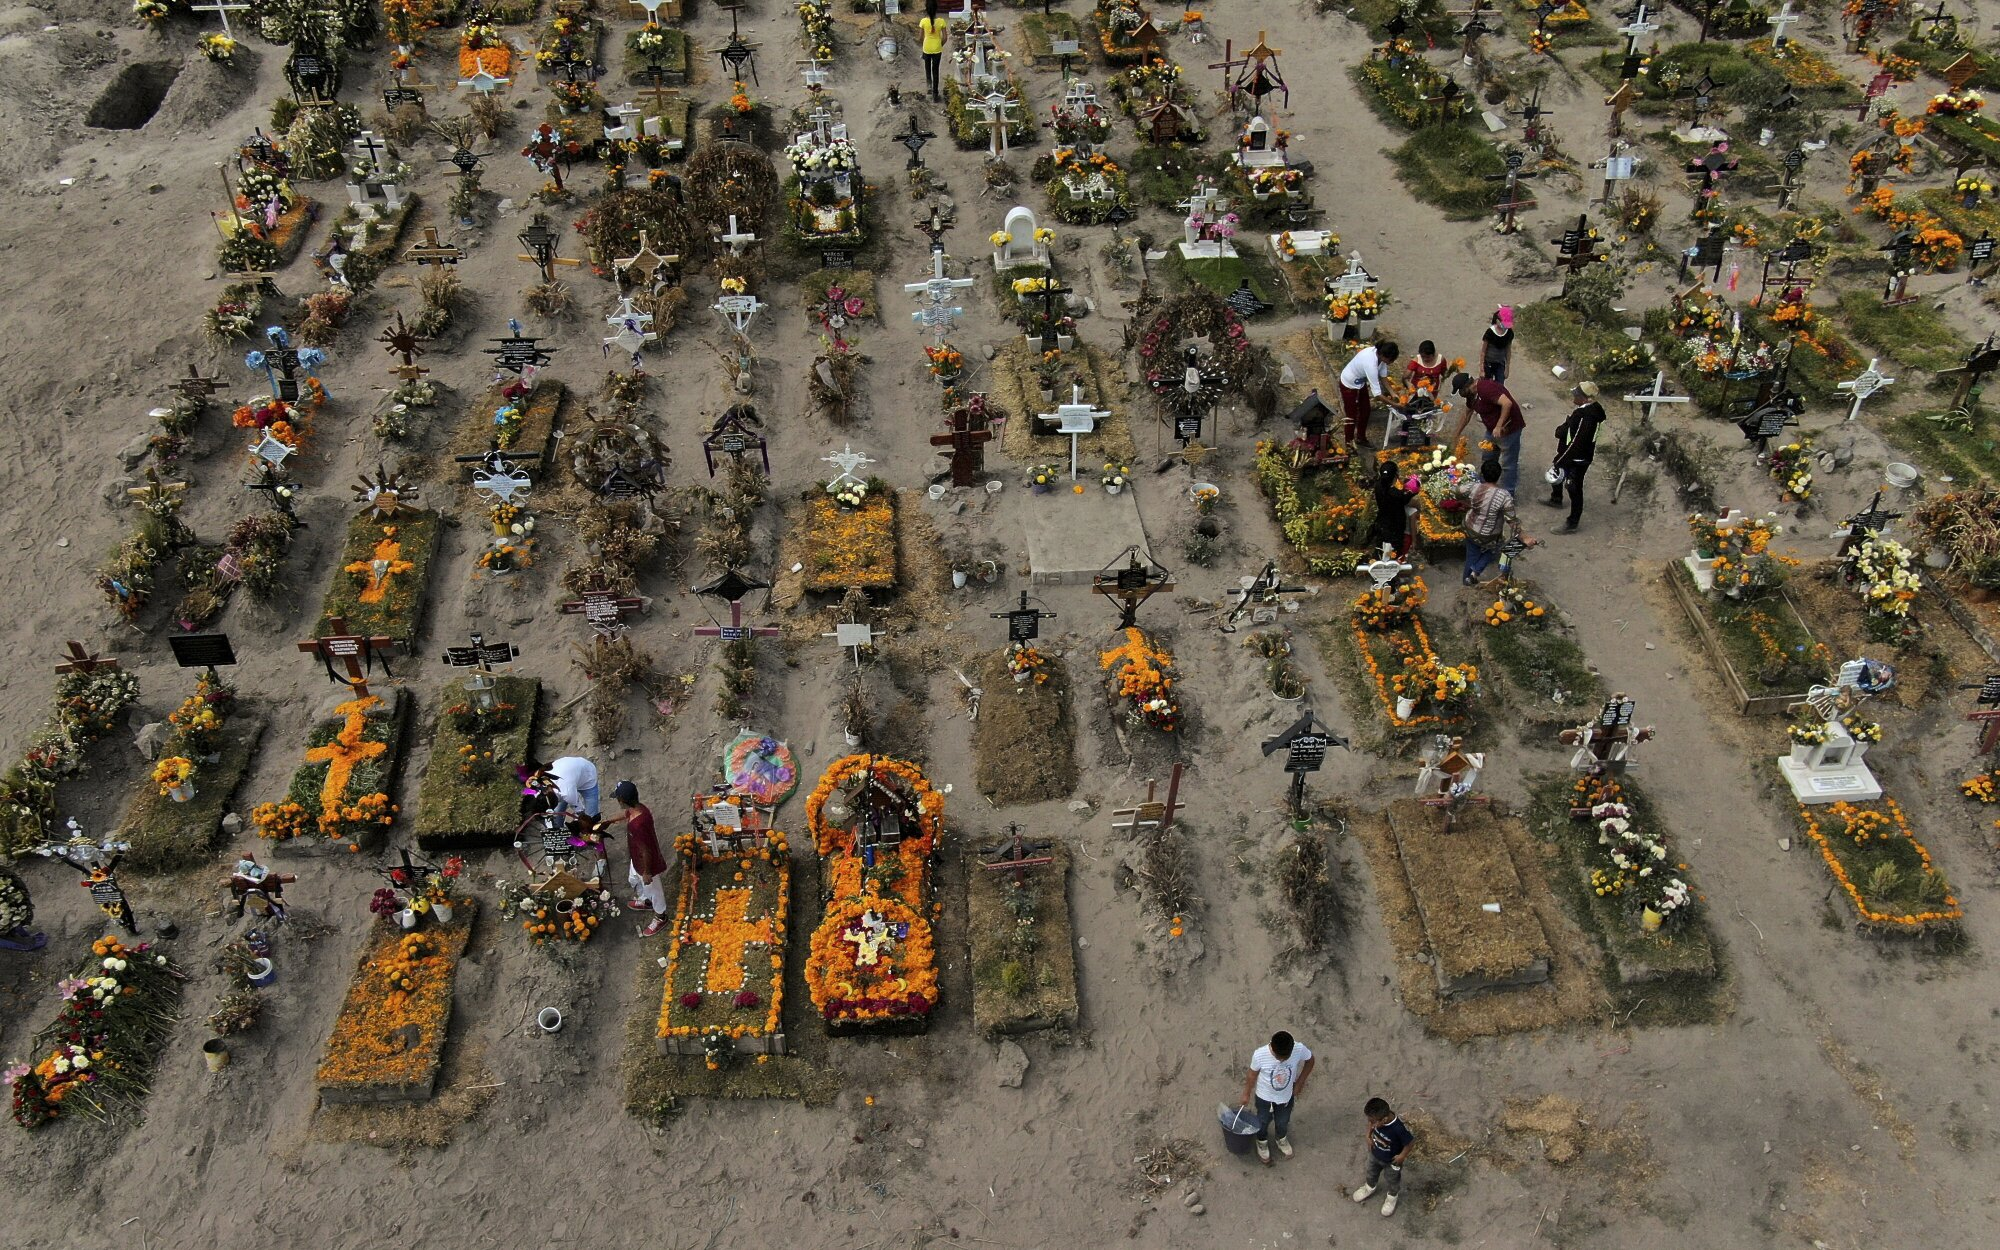 An aerial view of rows of graves adorned with flowers in a dirt graveyard